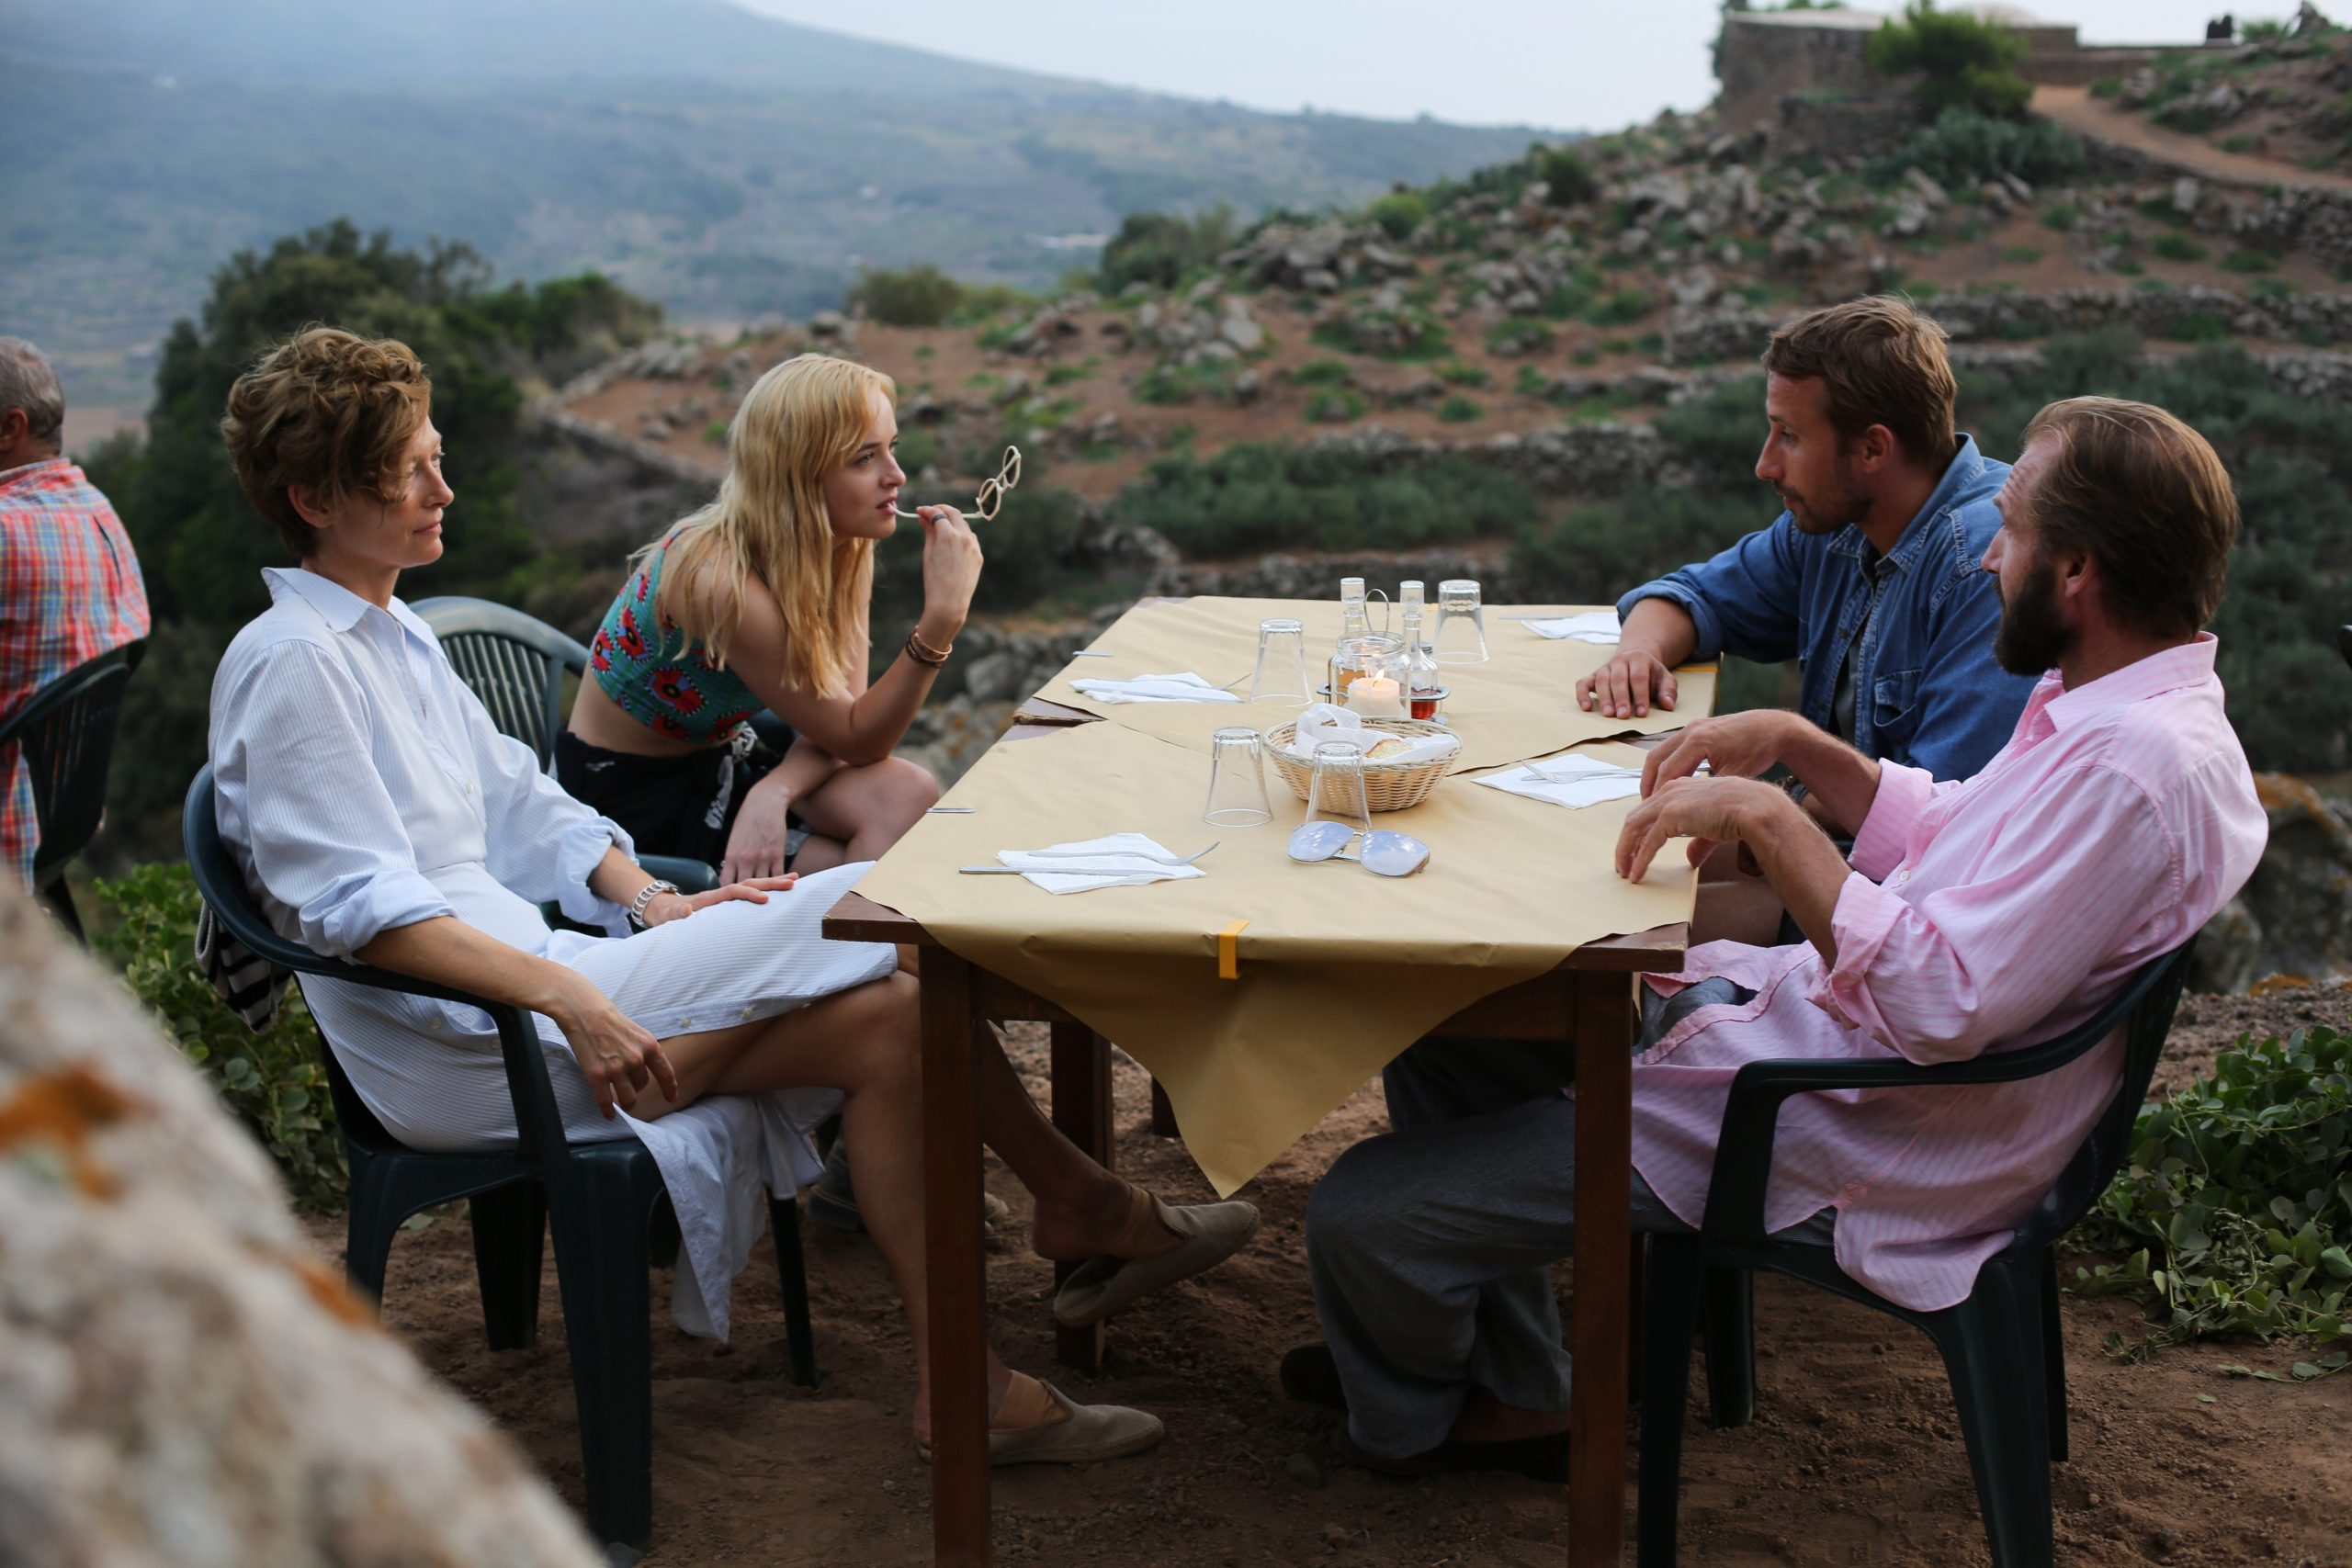 Swinton, Dakota Johnson, Matthias Schoenarts and Fiennes dine on Pantelleria in A Bigger Splash